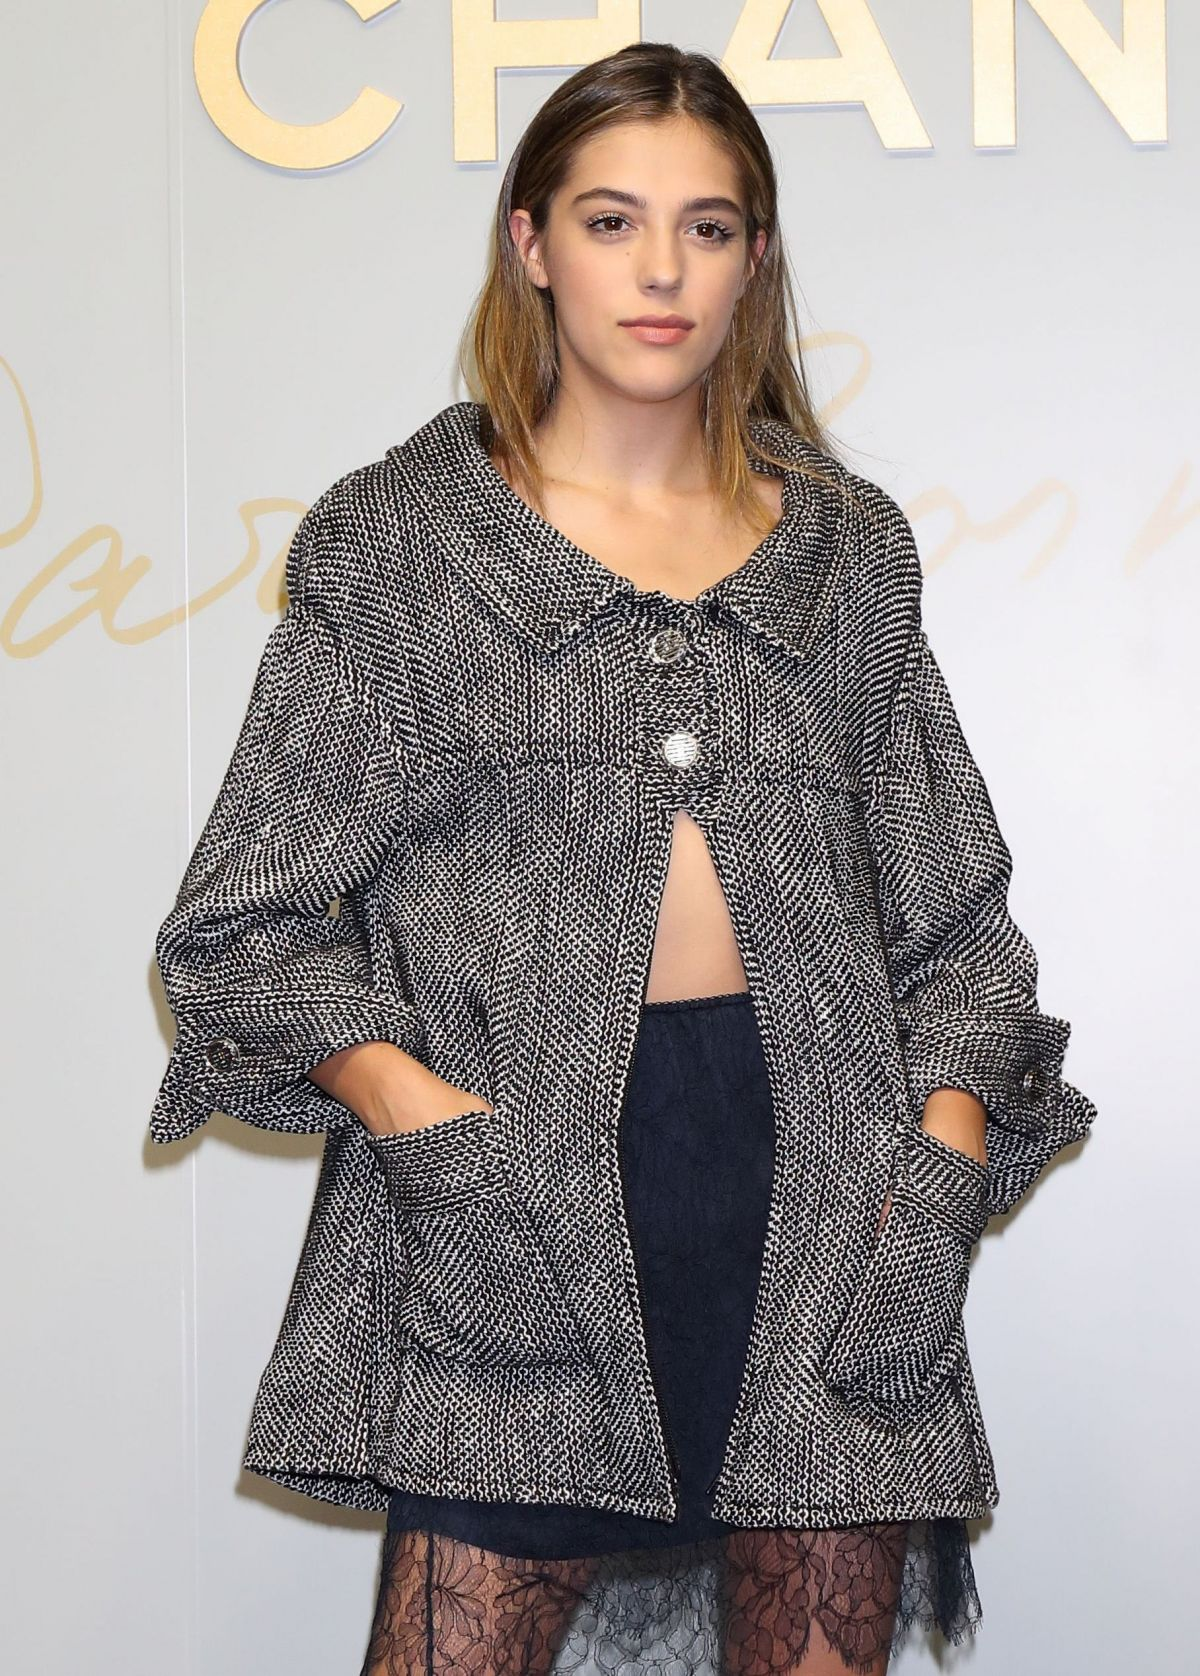 SISTINE ROSE STALLONE at Chanel Metiers D'Art 2016/17 Collection Fashion Show in Tokyo 05/31/2017